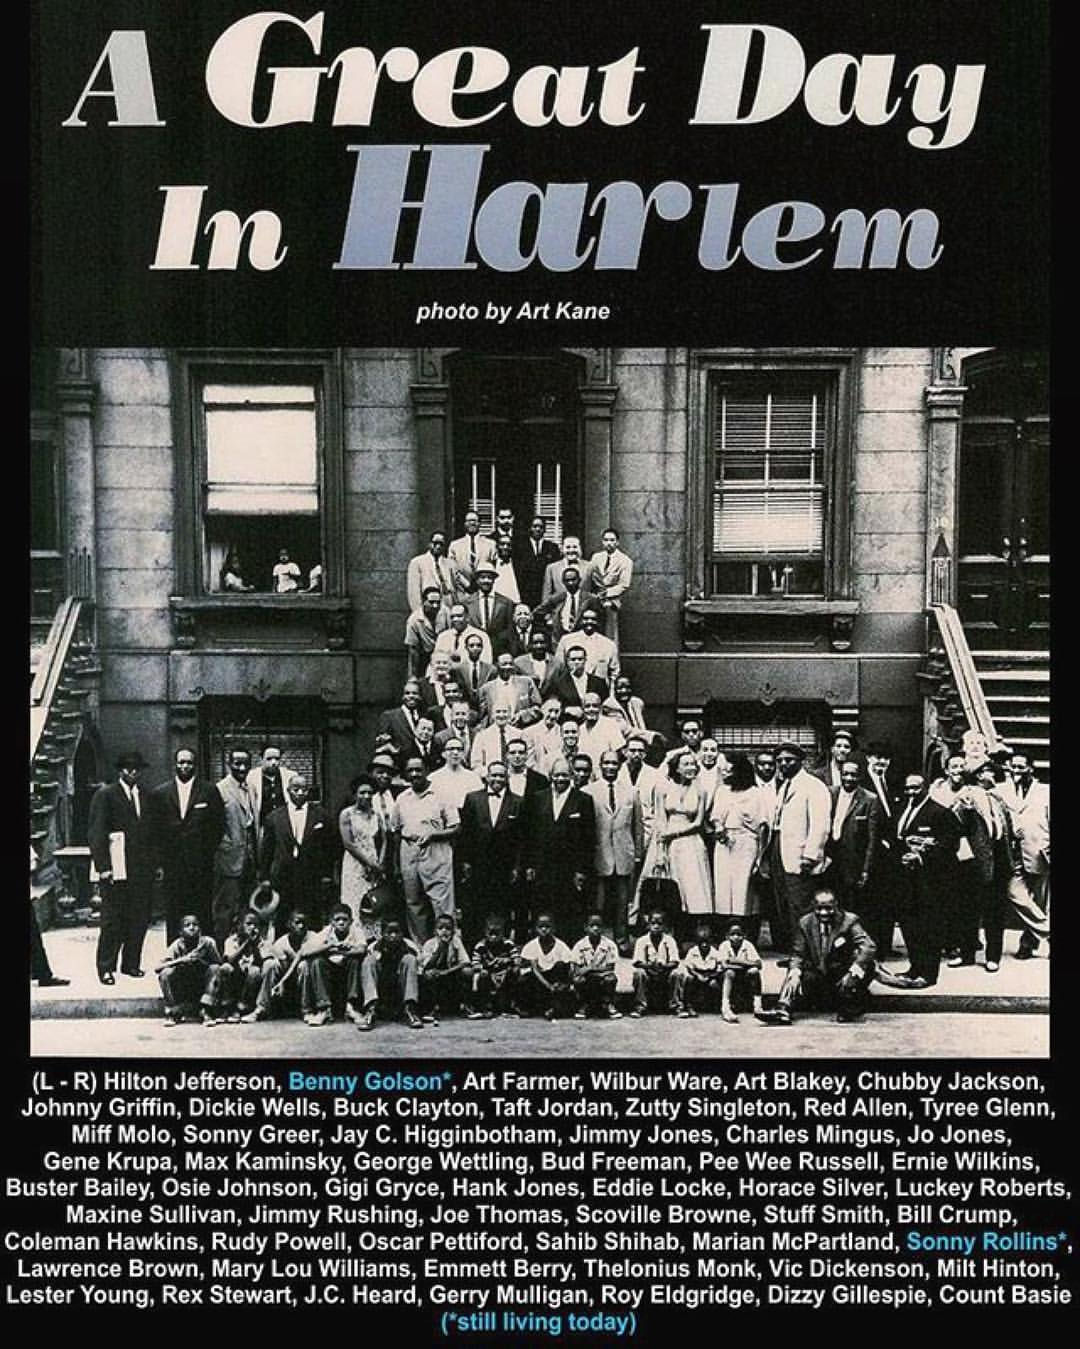 "💗#Repost @joyjazzradio  ・・・  ""A Great Day in Harlem - Art Kane""  #jazz  #jazzmusic  126th Street in Harlem on August 12 morning in 1958, the historic  crowd of Jazz musicians gathered around a brownstone between Madison &  Fifth avenues for what photographer #ArtKane rightly, if immodestly,  calls ""the greatest picture of that era of musicians ever taken""  (incredibly, it was also Kane's first professional shoot.)  Collectively they spanned the history of Jazz. The 57 artists stood at  10 a.m. (an absurd hour for musicians) to have their picture taken for  a Jazz issue of Esquire magazine, which has come to be known as ""A  Great Day in Harlem"".  (L - R) Hilton Jefferson, Benny Golson*, Art Farmer, Wilbur Ware, Art  Blakey, Chubby Jackson, Johnny Griffin, Dickie Wells, Buck Clayton,  Taft Jordan, Zutty Singleton, Red Allen, Tyree Glenn, Miff Molo, Sonny  Greer, Jay C. Higginbotham, Jimmy Jones, Charles Mingus, Jo Jones,  Gene Krupa, Max Kaminsky, George Wettling, Bud Freeman, Pee Wee  Russell, Ernie Wilkins, Buster Bailey, Osie Johnson, Gigi Gryce, Hank  Jones, Eddie Locke, Horace Silver, Luckey Roberts, Maxine Sullivan,  Jimmy Rushing, Joe Thomas, Scoville Browne, Stuff Smith, Bill Crump,  Coleman Hawkins, Rudy Powell, Oscar Pettiford, Sahib Shihab, Marian  McPartland, Sonny Rollins*, Lawrence Brown, Mary Lou Williams, Emmett  Berry, Thelonius Monk, Vic Dickenson, Milt Hinton, Lester Young, Rex  Stewart, J.C. Heard, Gerry Mulligan, Roy Eldgridge, Dizzy Gillespie,  Count Basie.  (*still living today)"